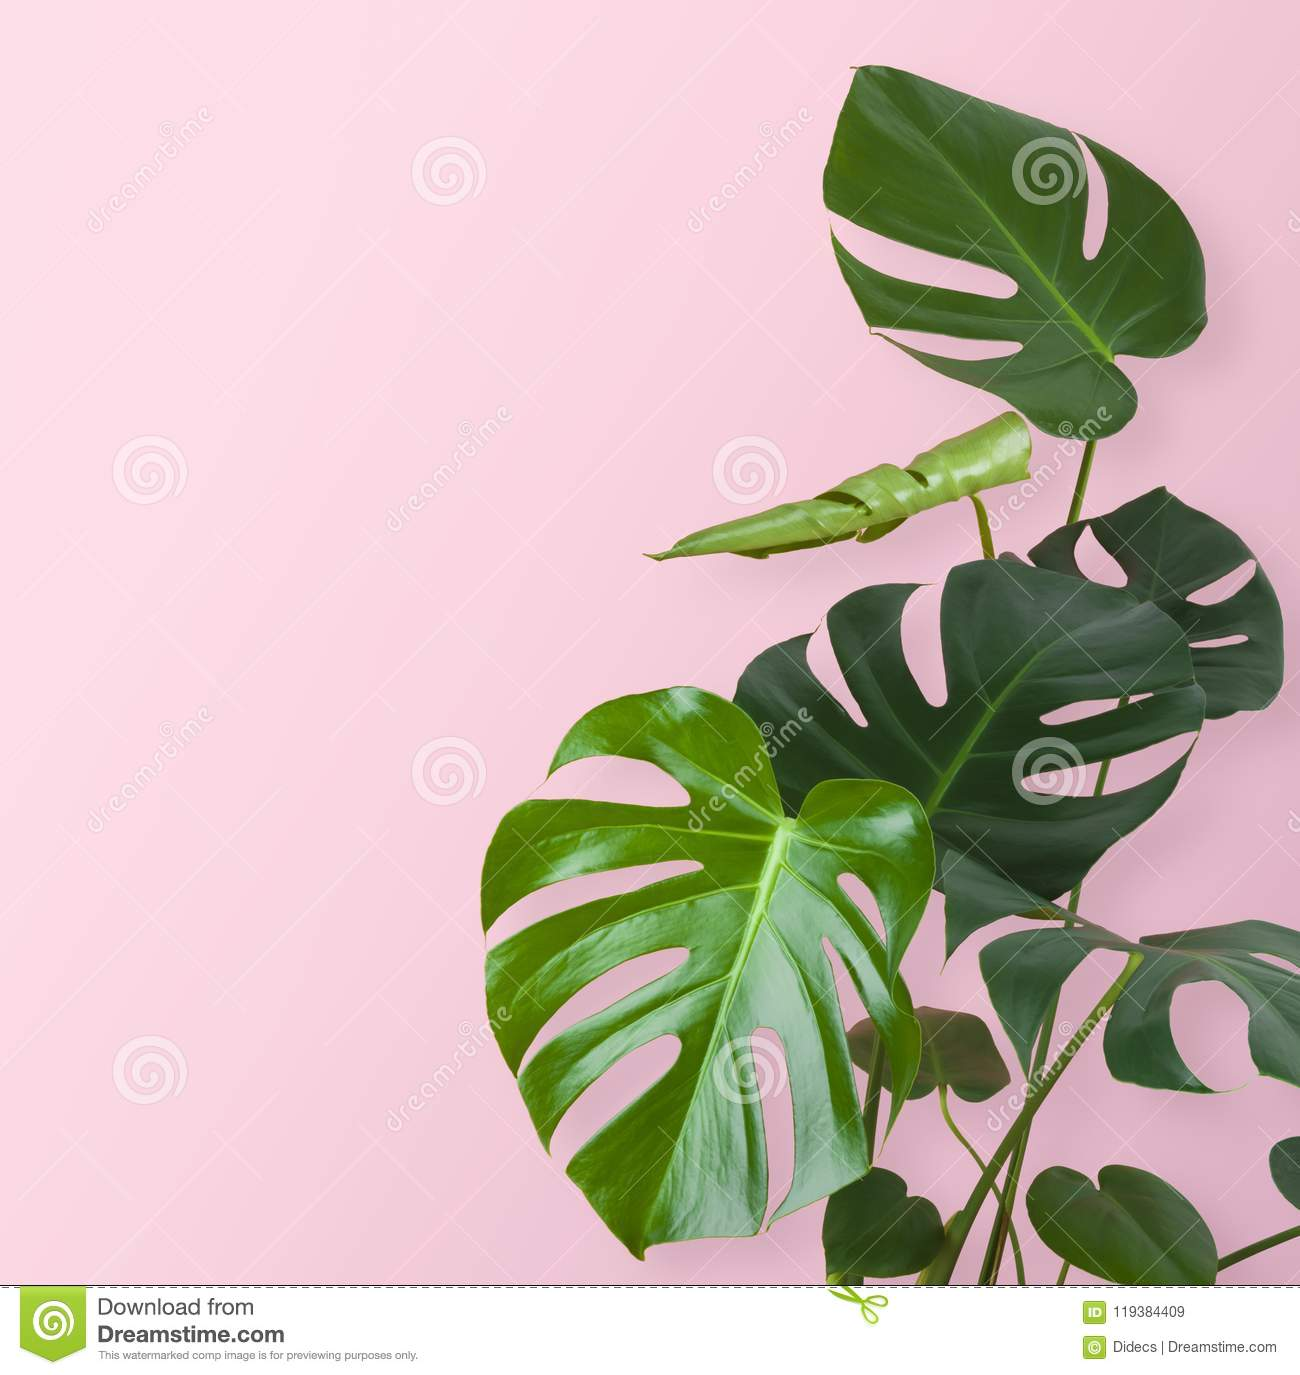 Green tropical plant stem and leaves isolated on pink background